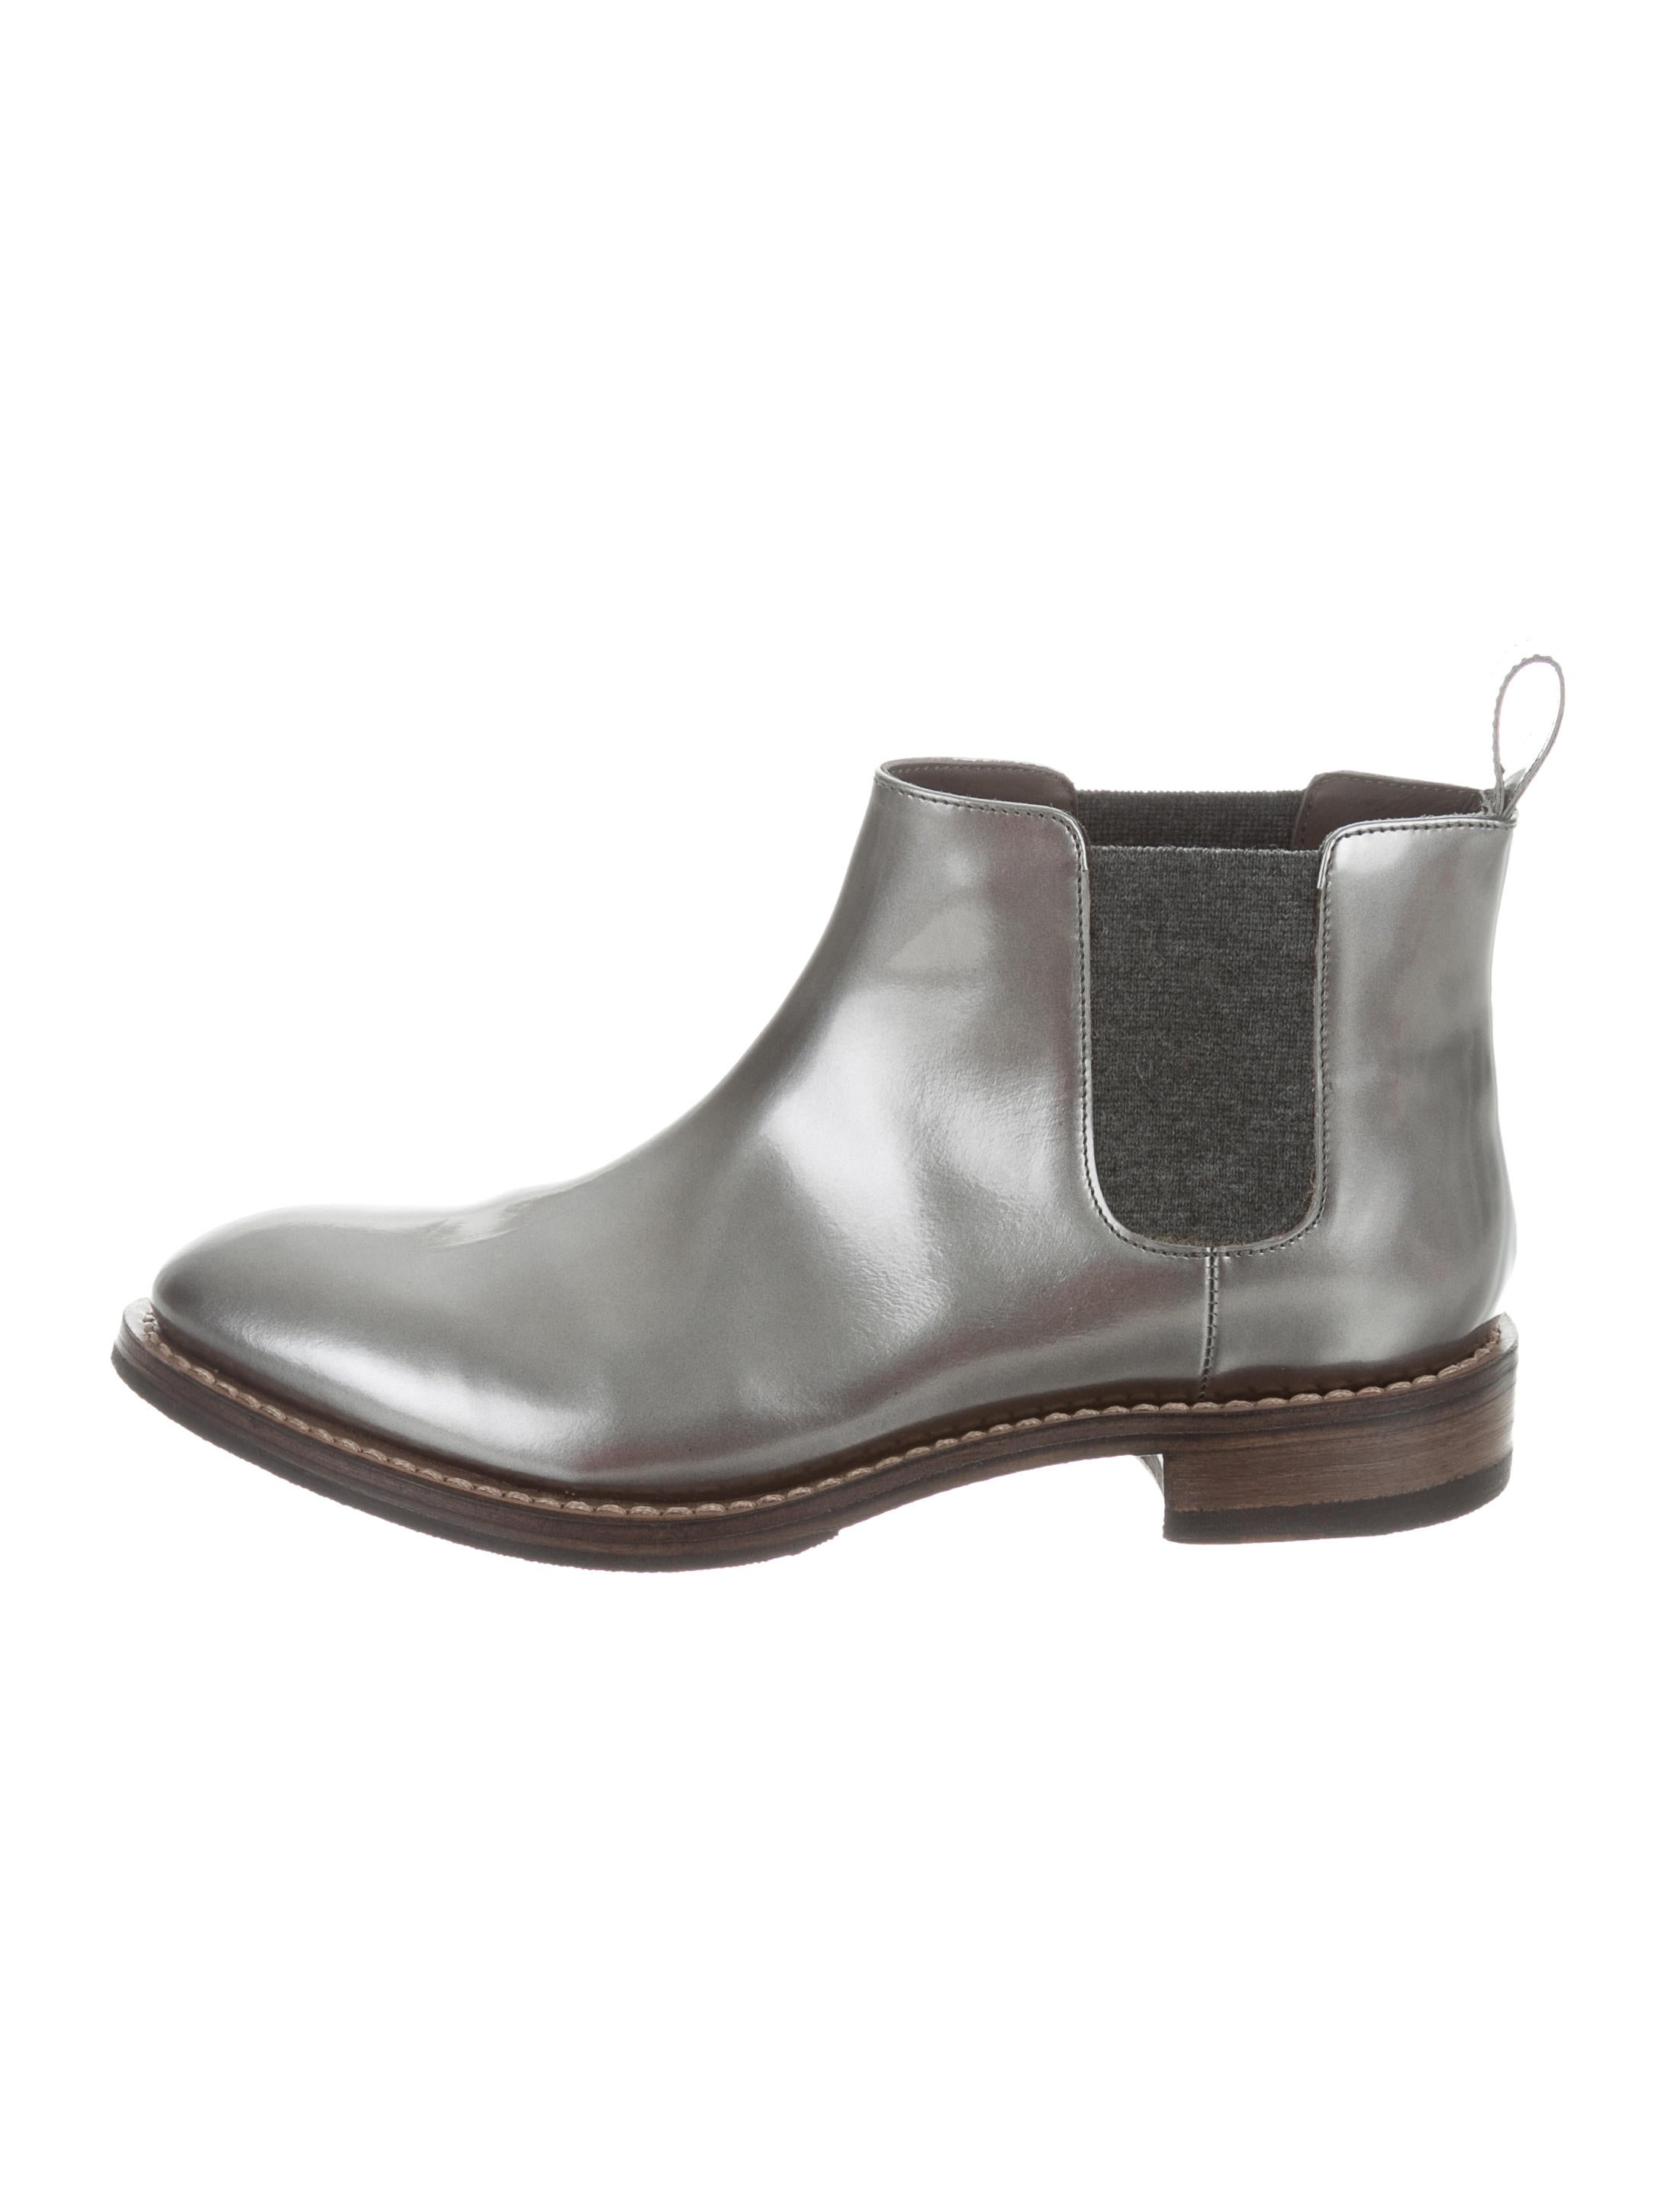 Brunello Cucinelli Metallic Leather Ankle Boots w/ Tags the cheapest clearance official site fashion Style online very cheap cheap online 7coxD6i